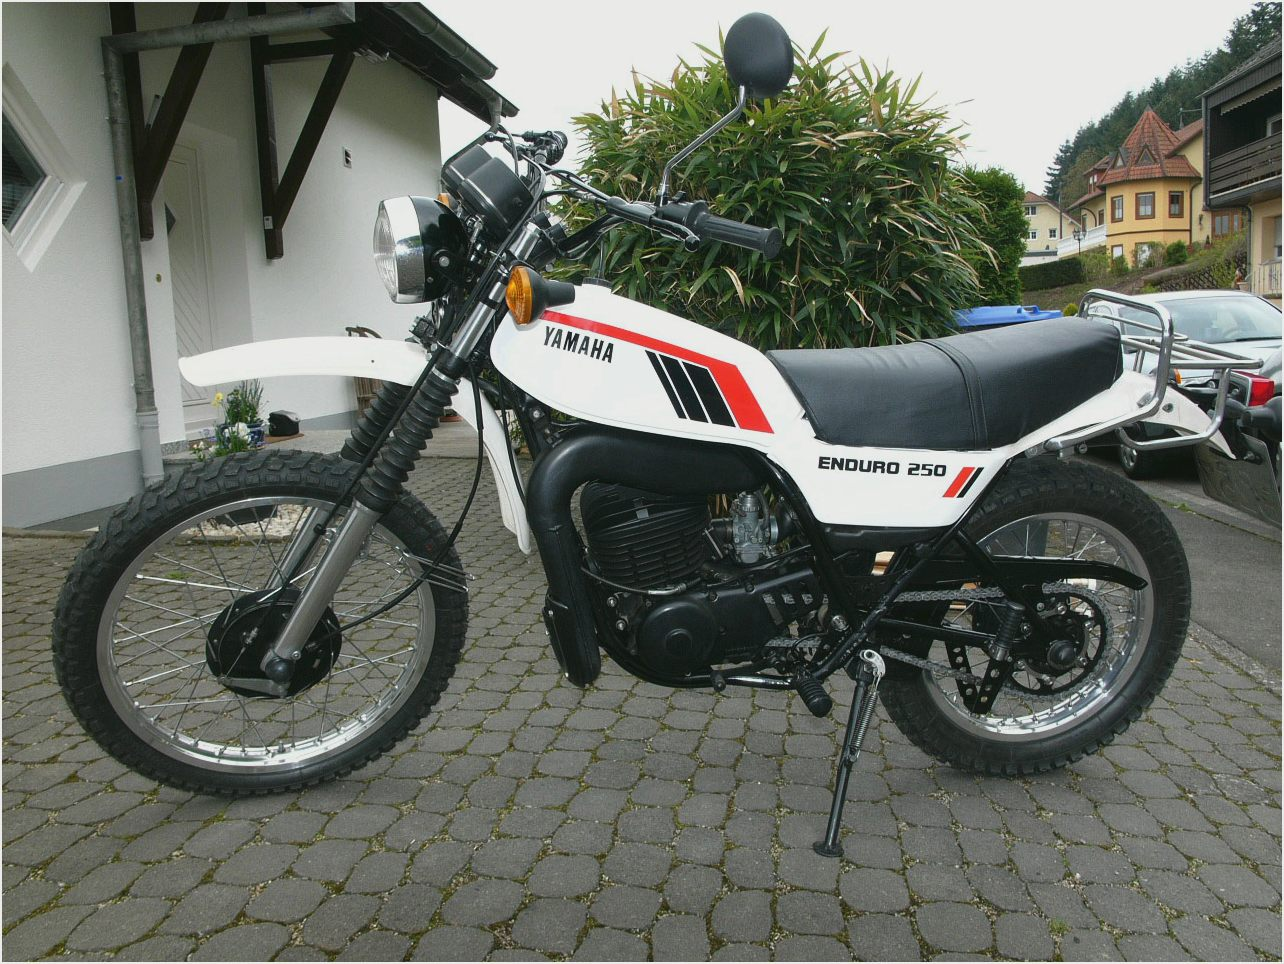 Yamaha DT 250 1973 images #90010